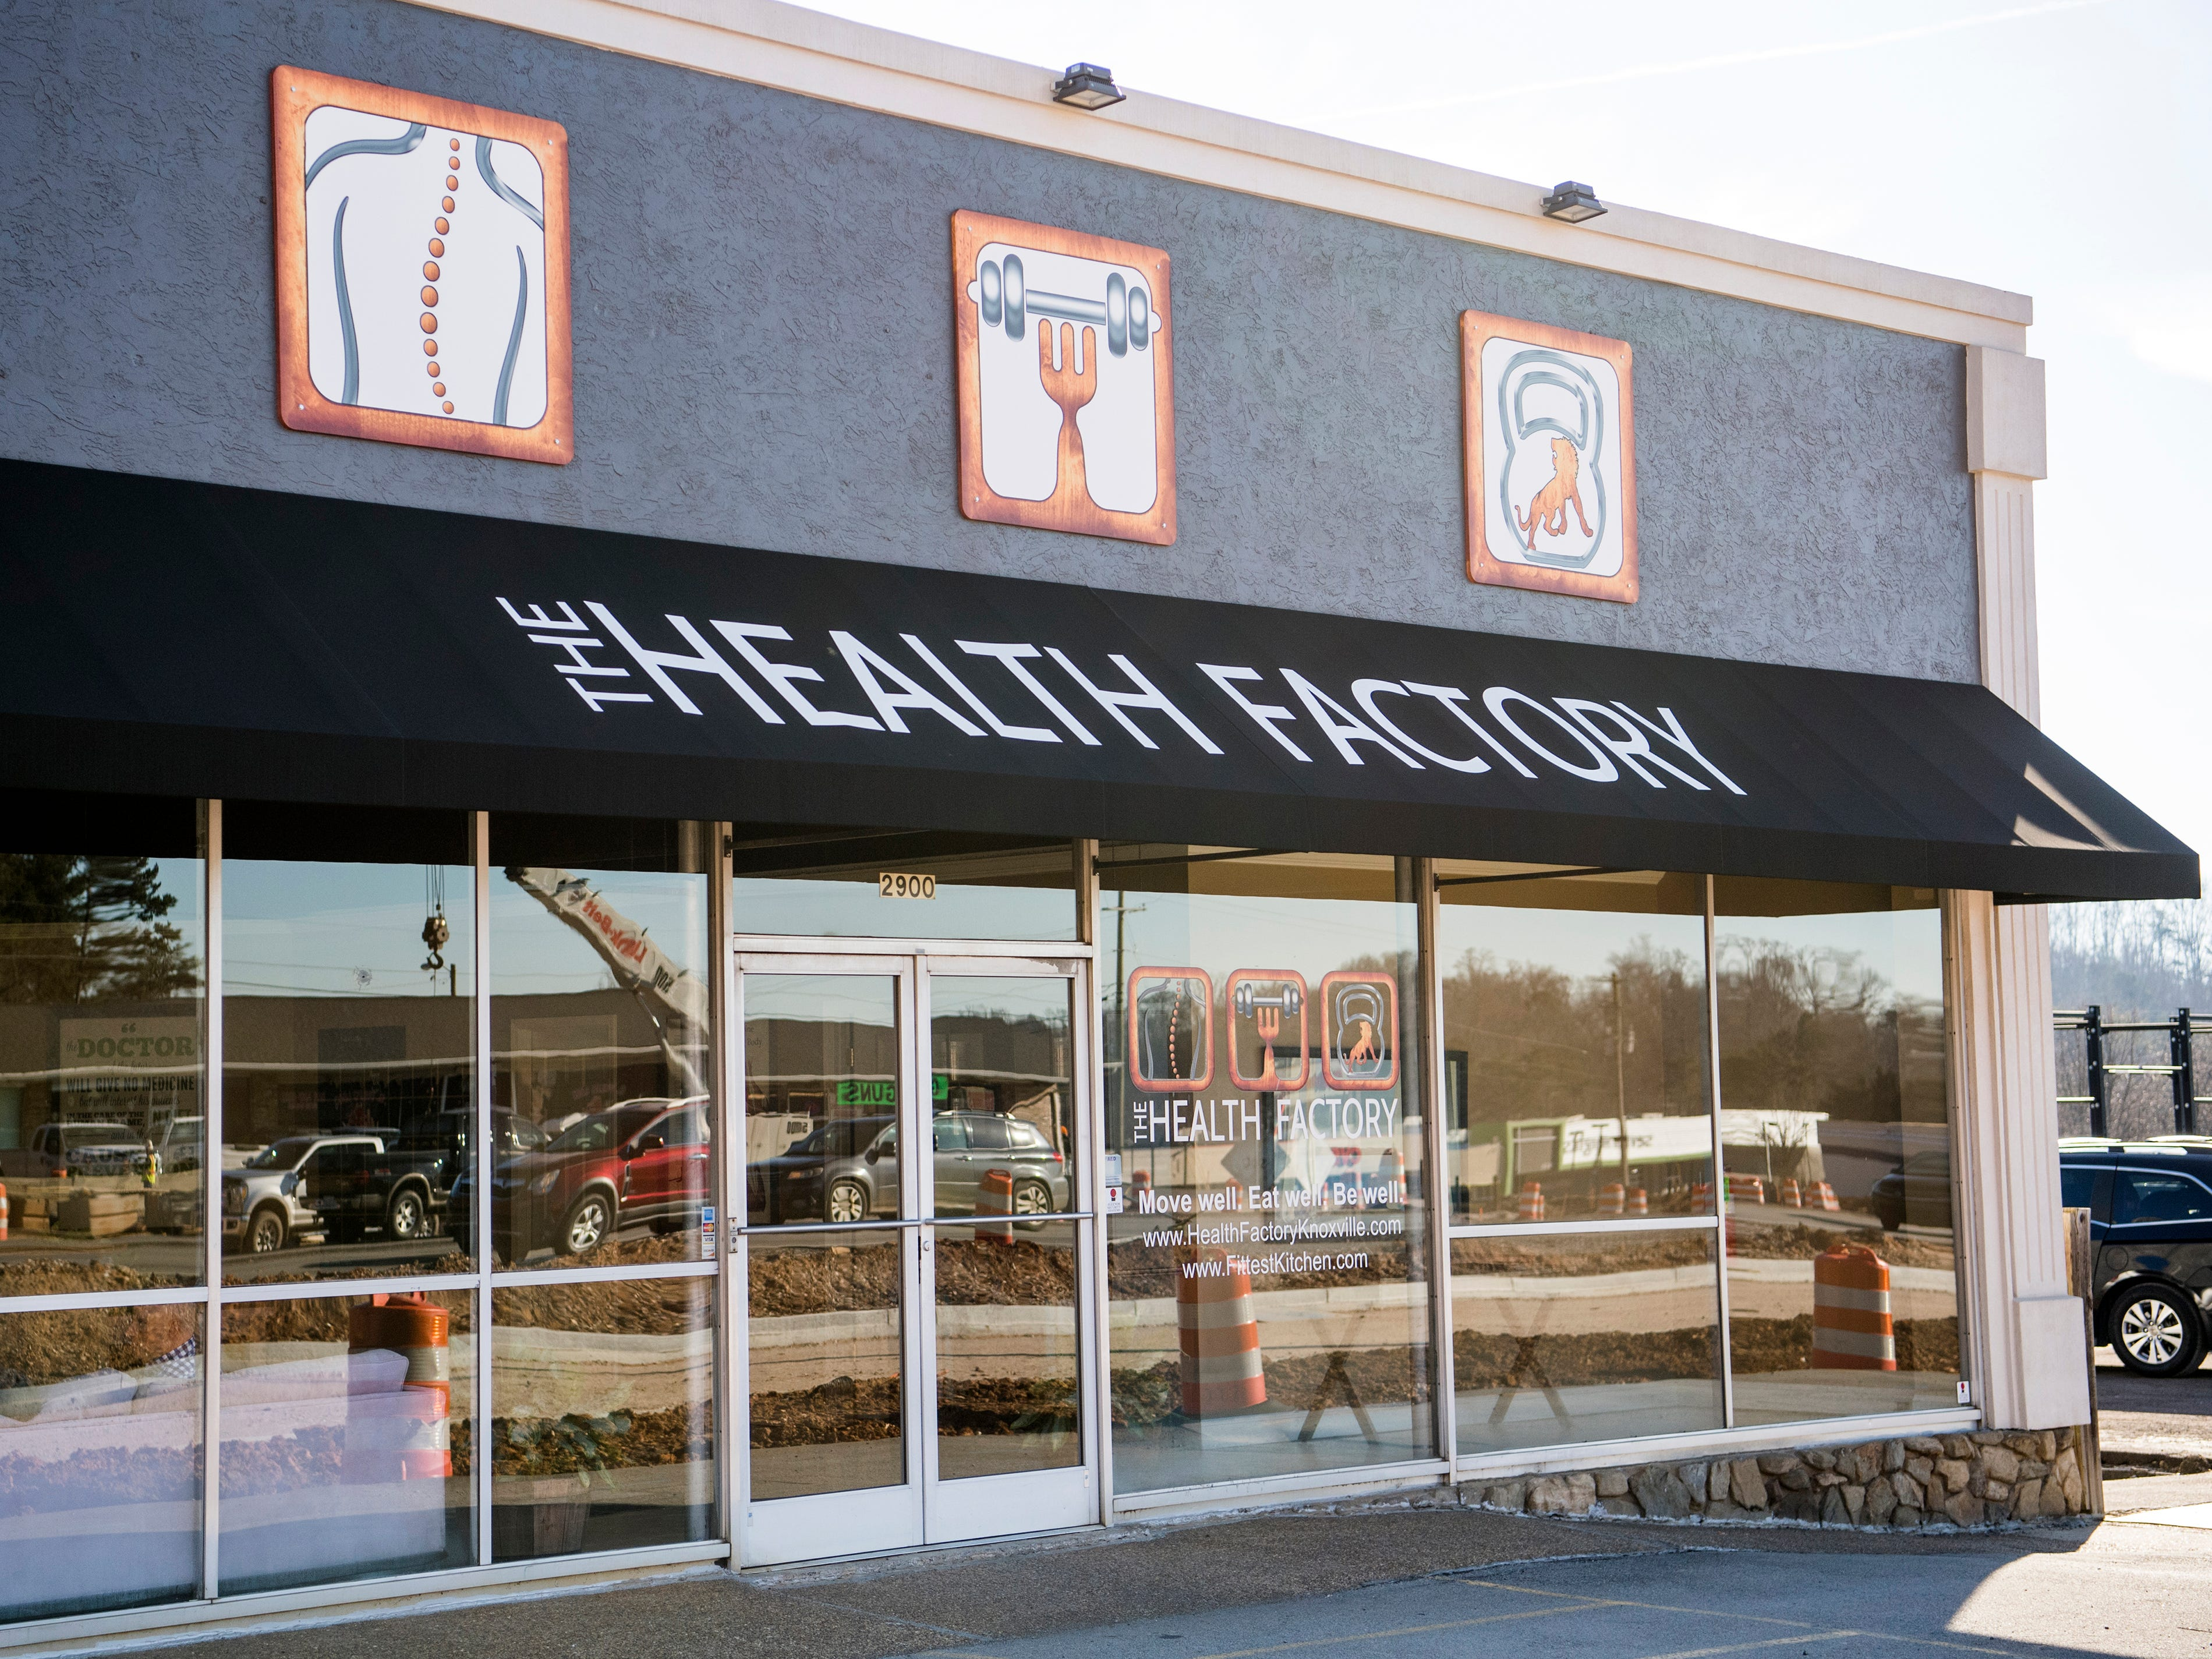 Fittest Kitchen is located inside The Health Factory on Alcoa Highway in Knoxville.